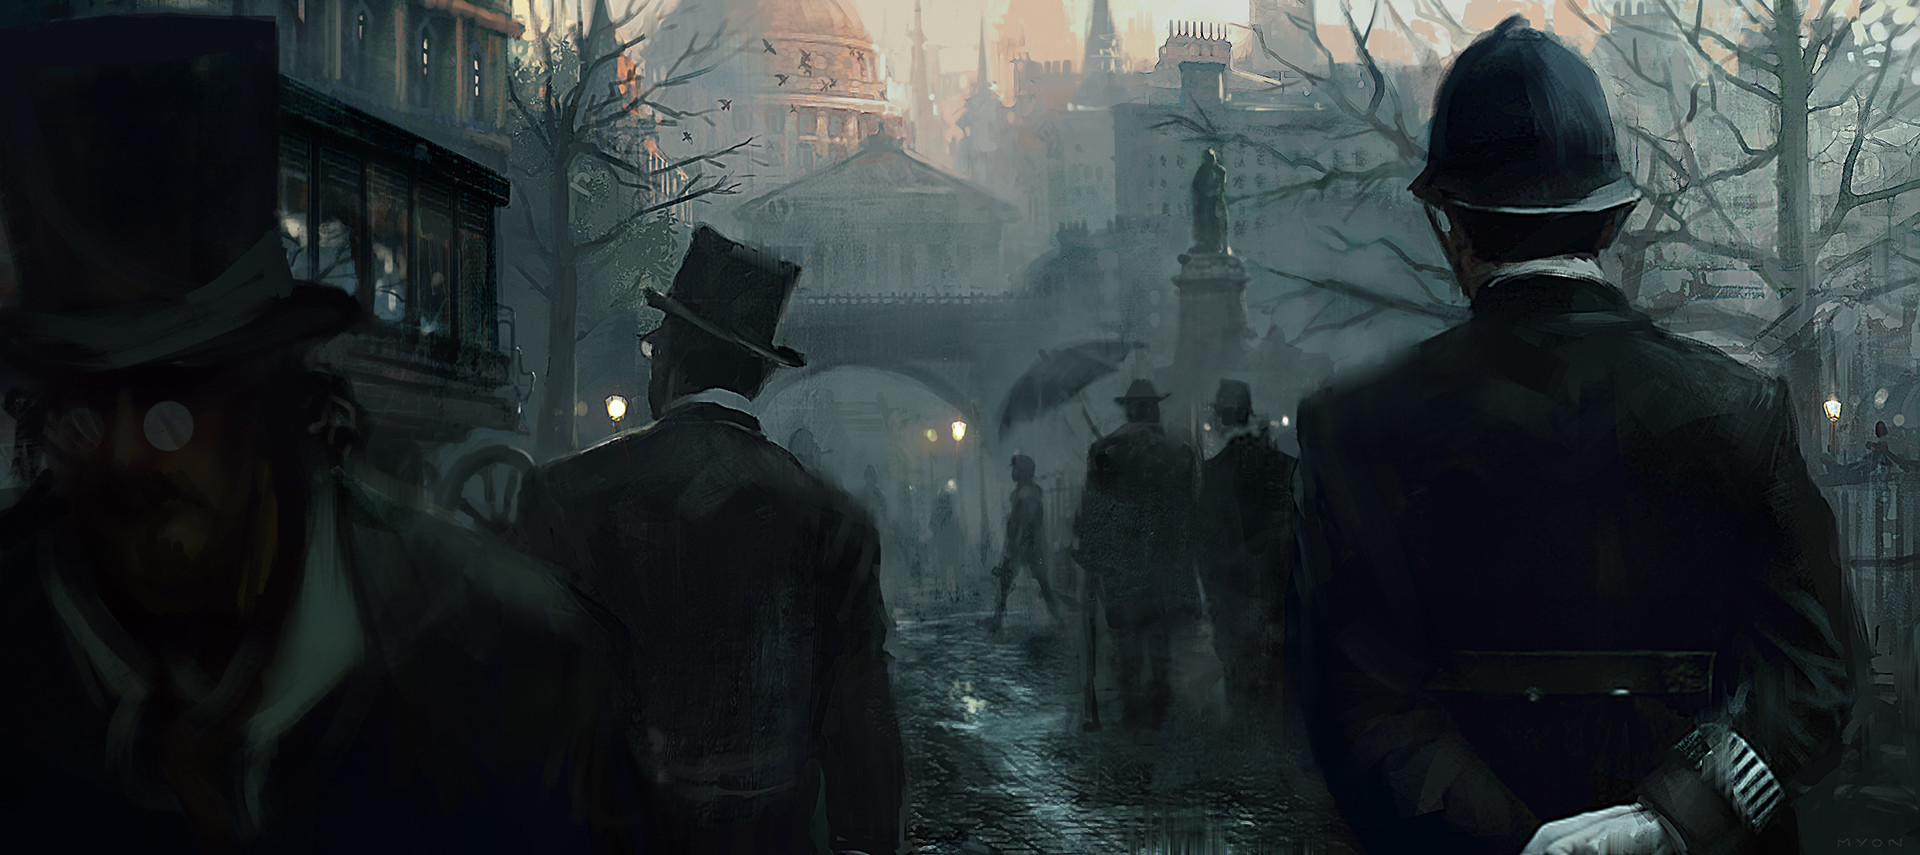 Assassin's Creed Syndicate: Jack the Ripper Concept Art by Morgan